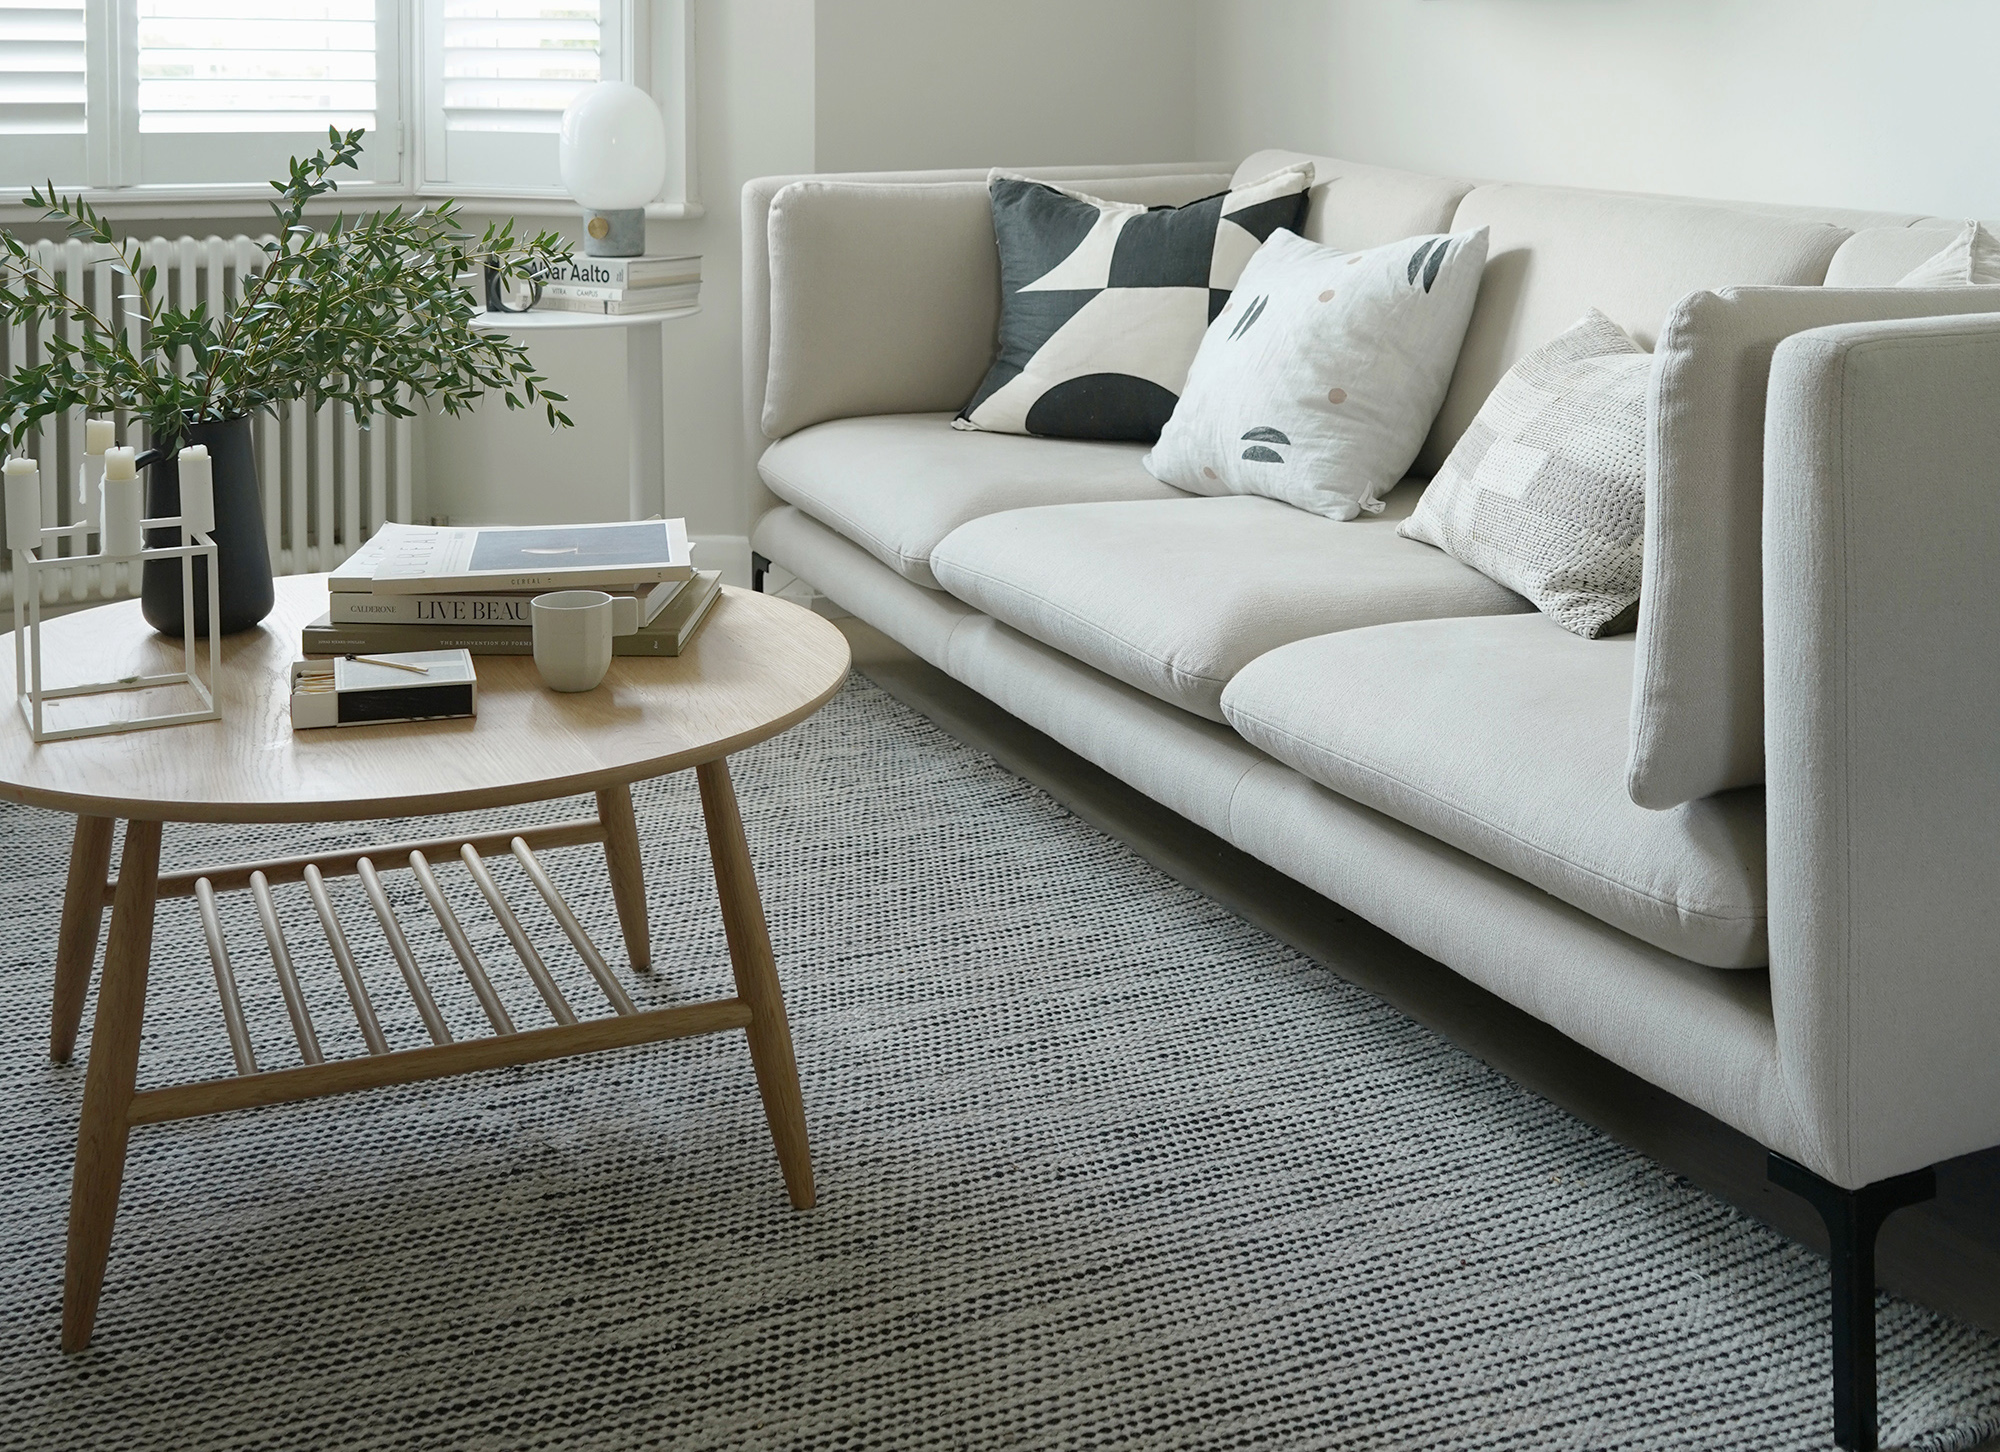 15 Of The Best Minimalist Wooden Coffee Tables